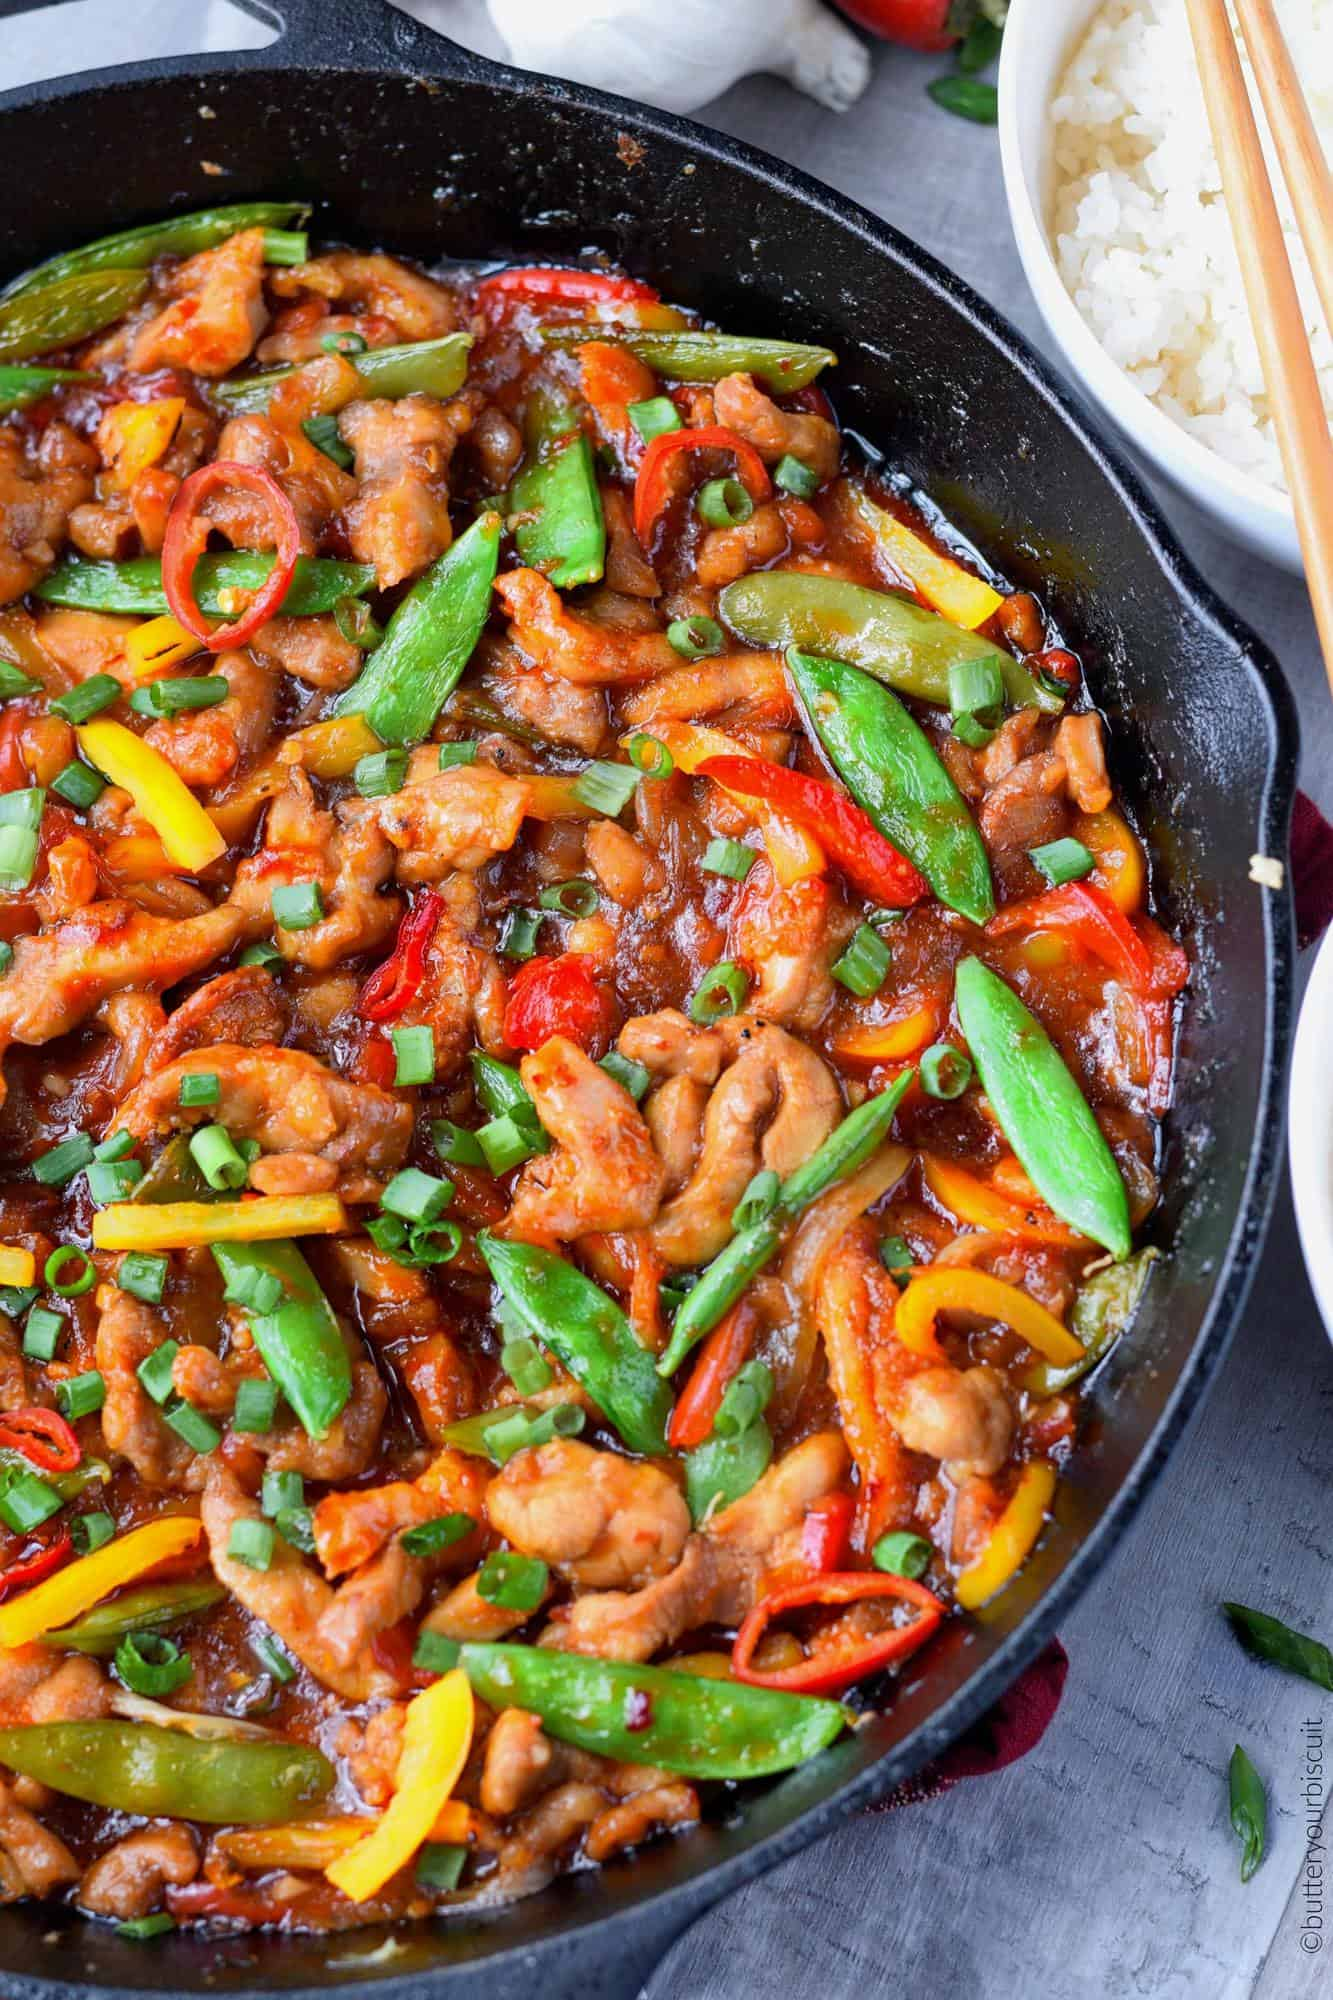 Sweet and Spicy chicken stir fry in cast iron skillet